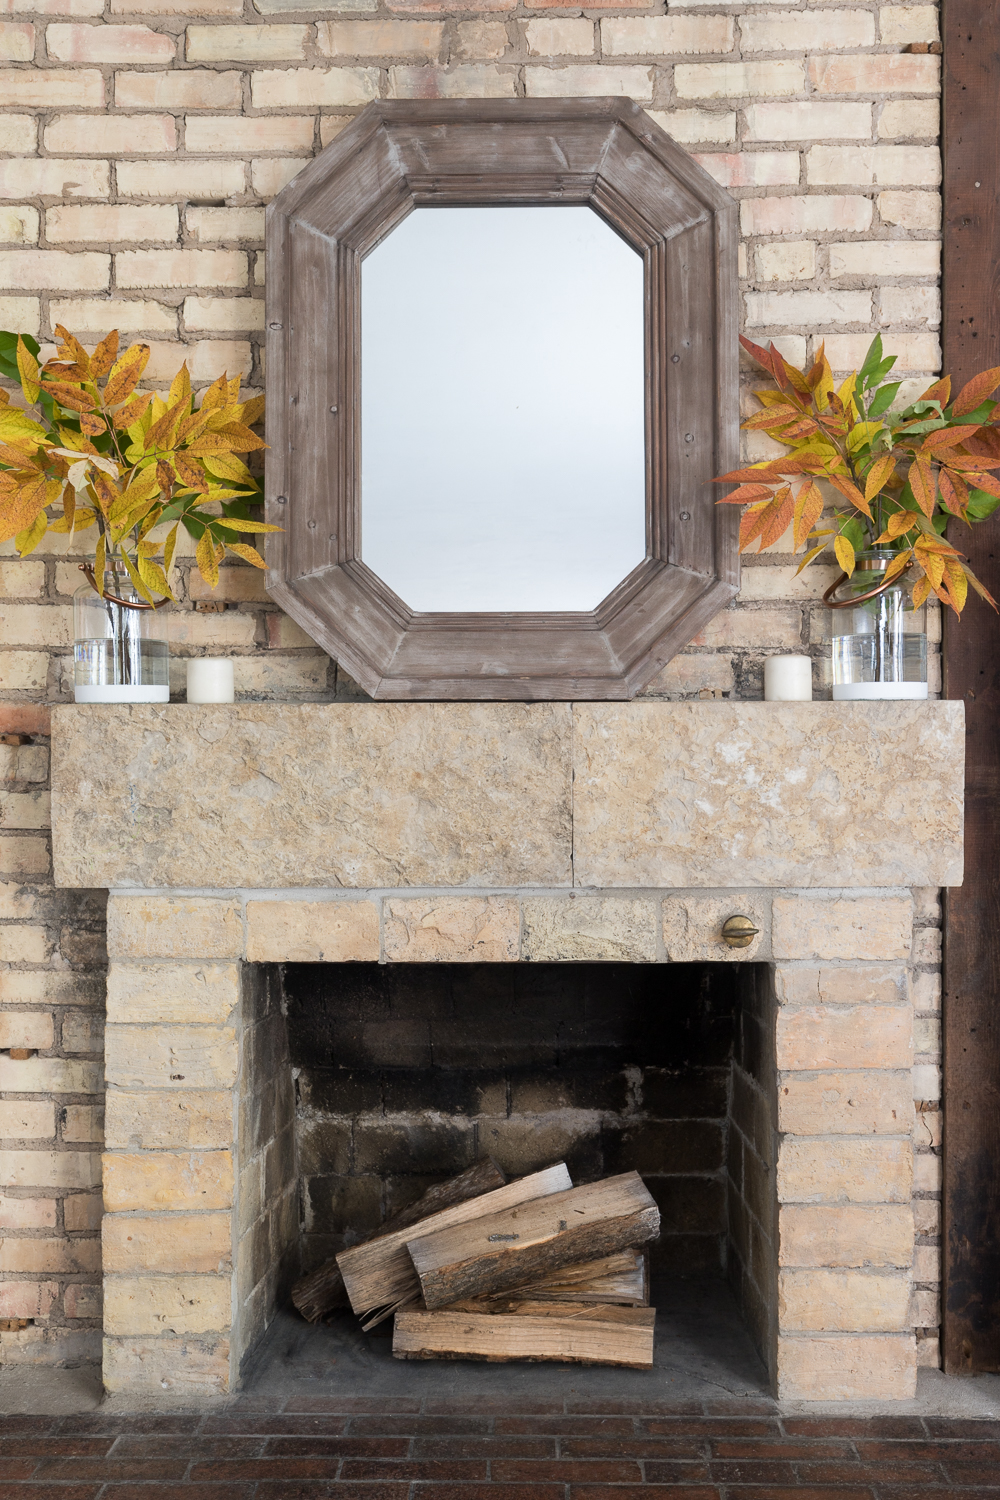 With a simple craft project and clippings from nature you can create this easy, natural fall mantel to compliment your decor!